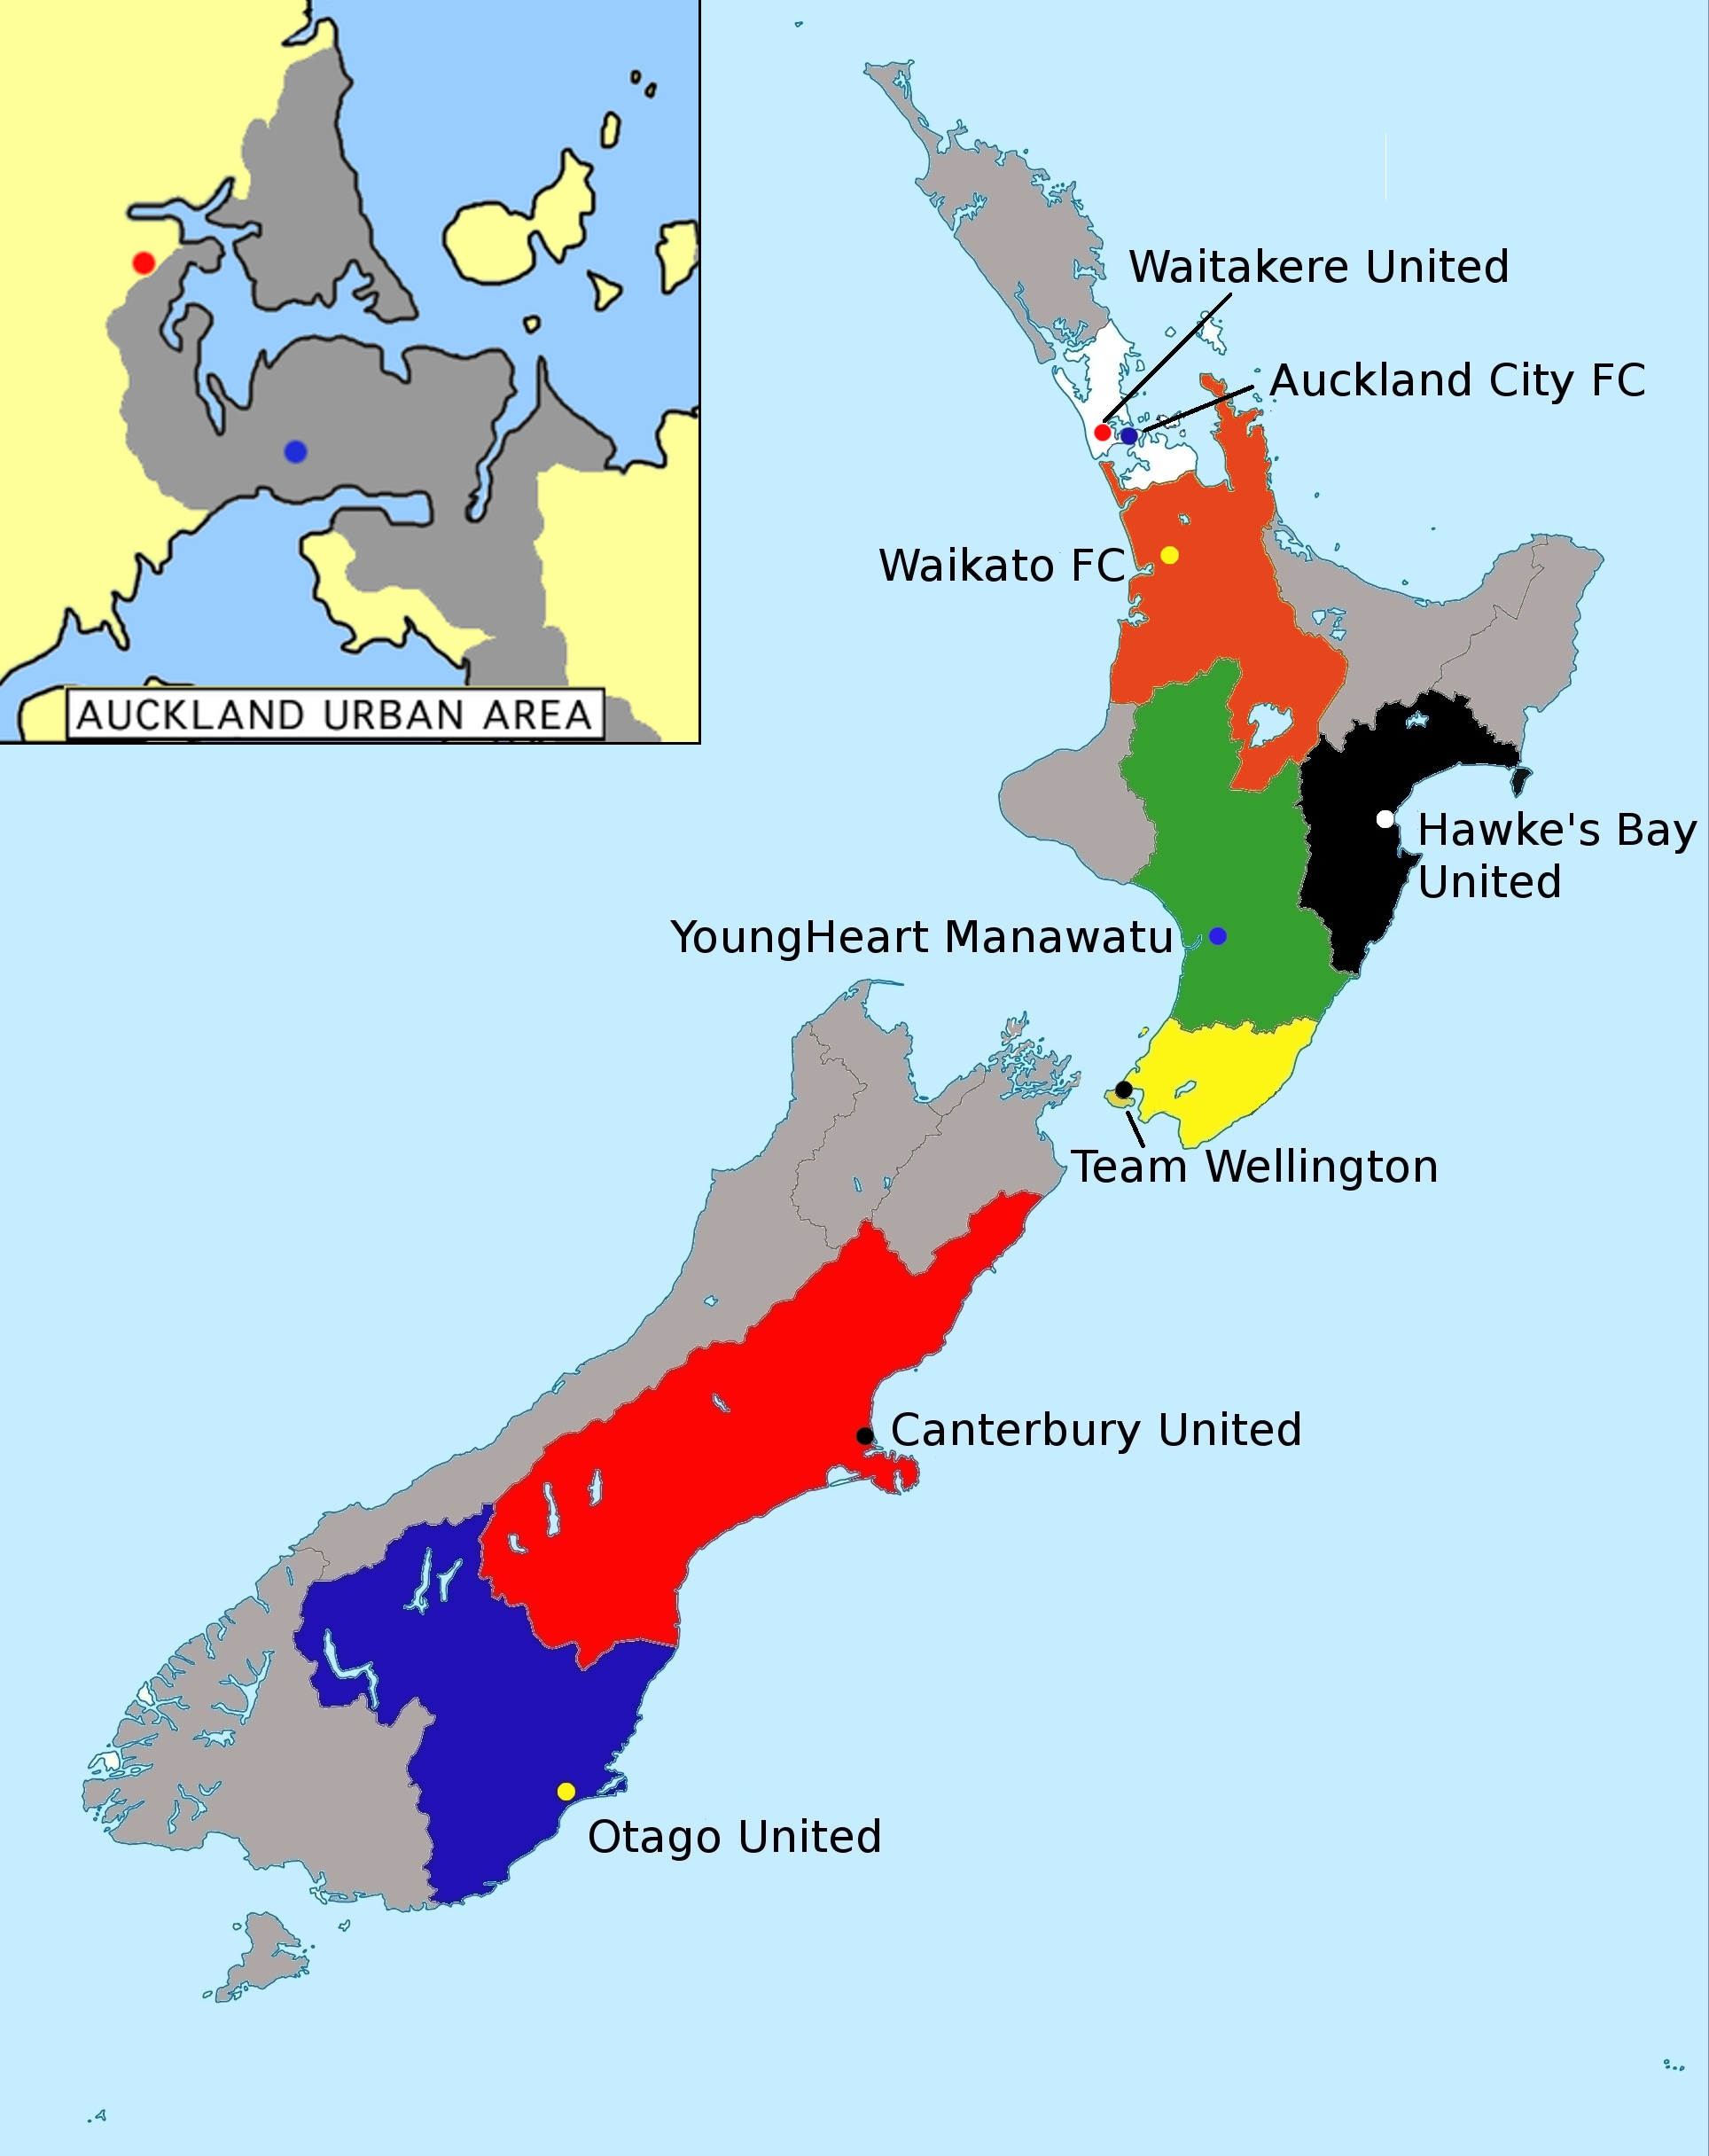 Where Is New Zealand Located In The World Map.File New Zealand Football Championship Location Map Jpg Wikimedia